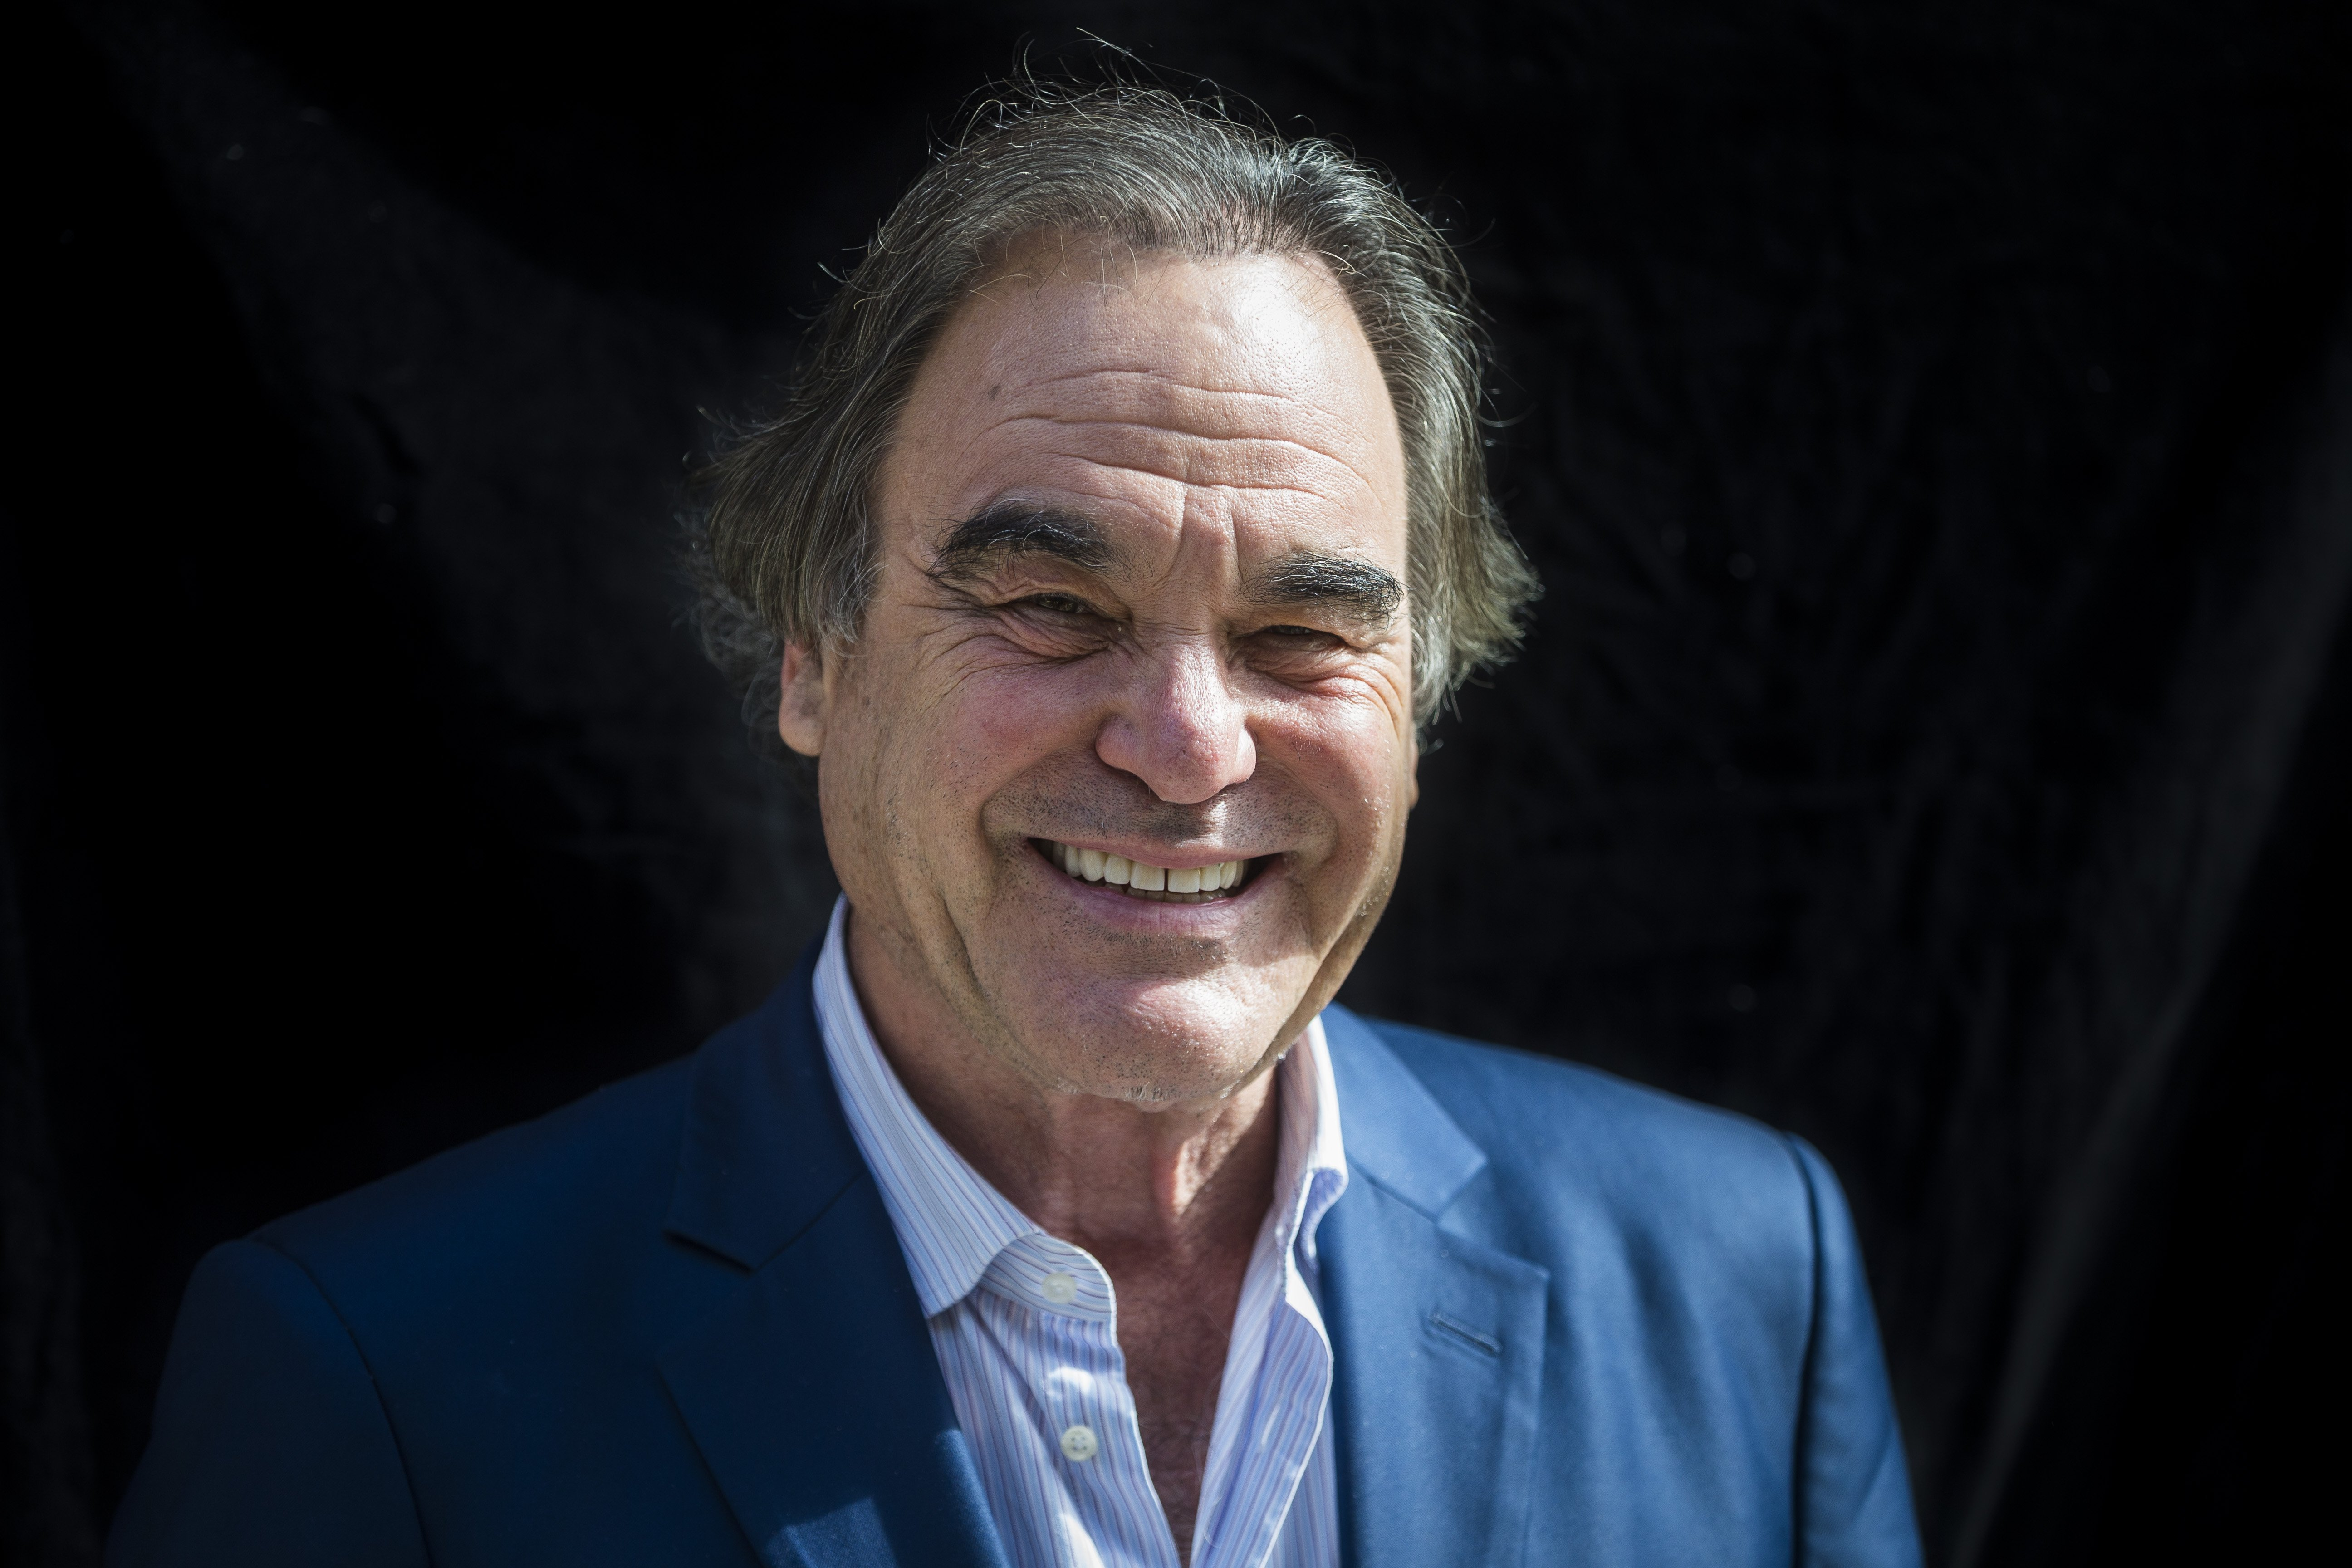 Image Credits: Getty Images | Oliver Stone